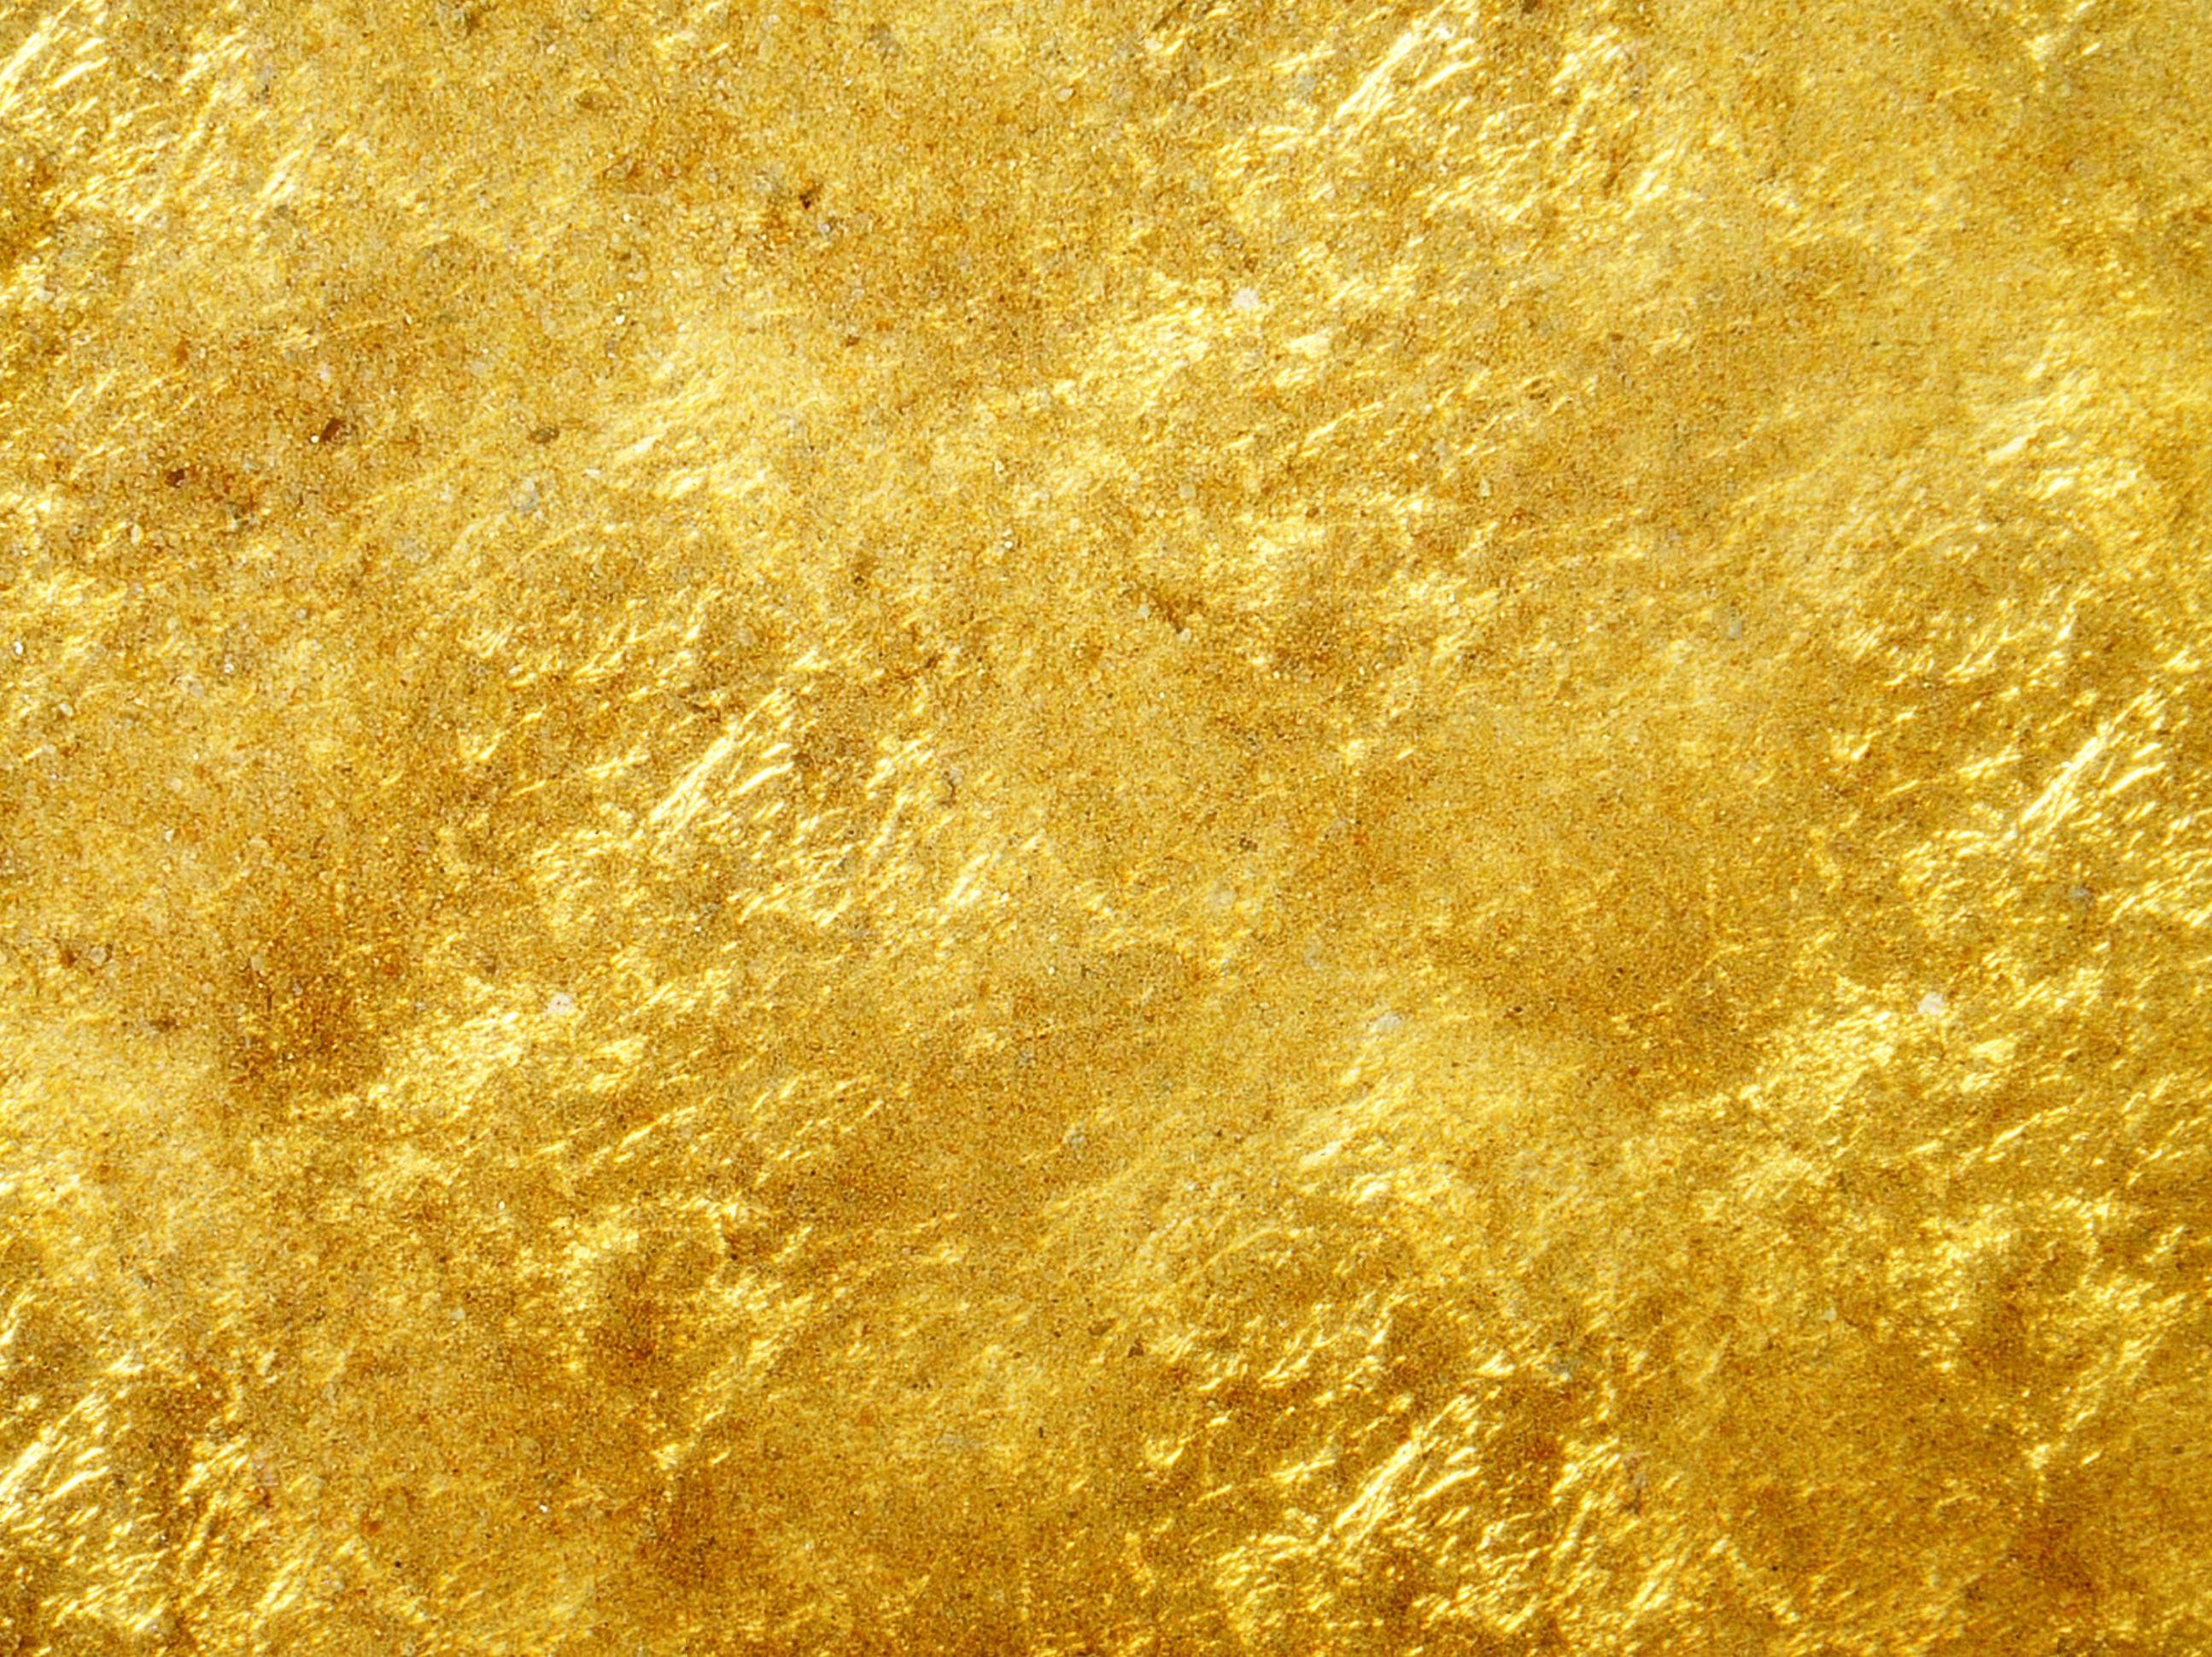 golden gold texture background MEMEs 2590x1940